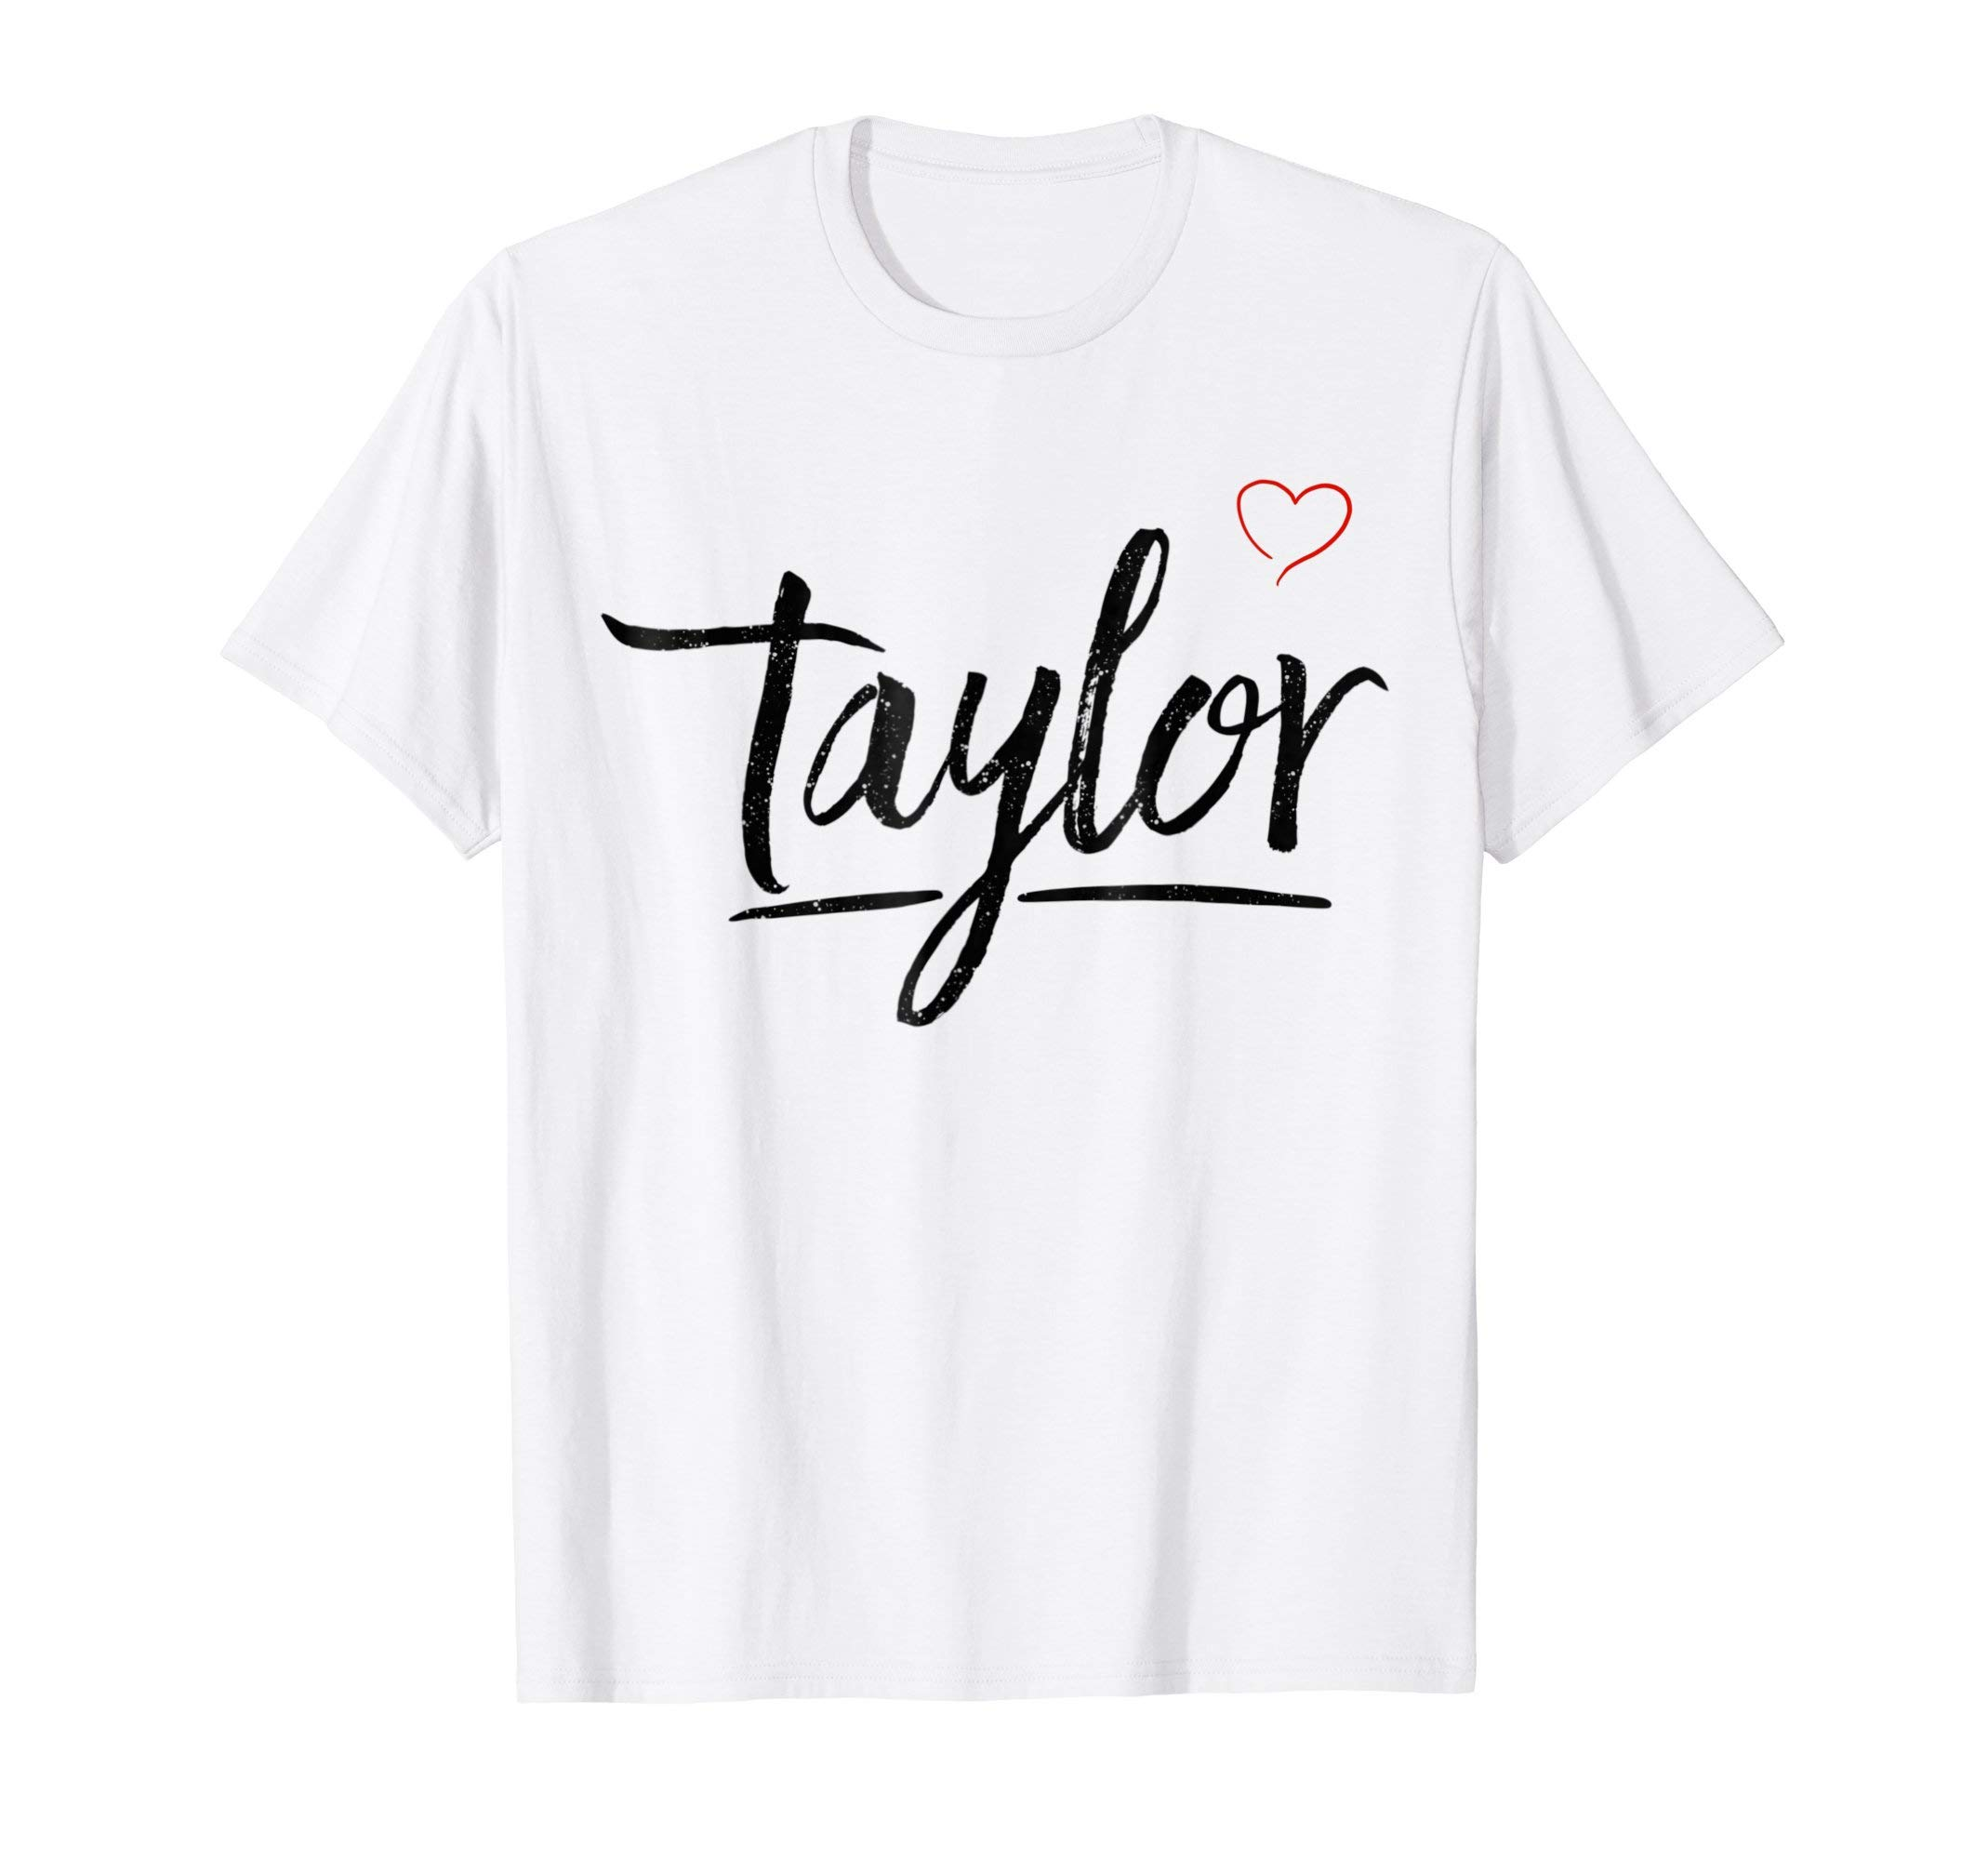 Love Taylor T-Shirt with Heart